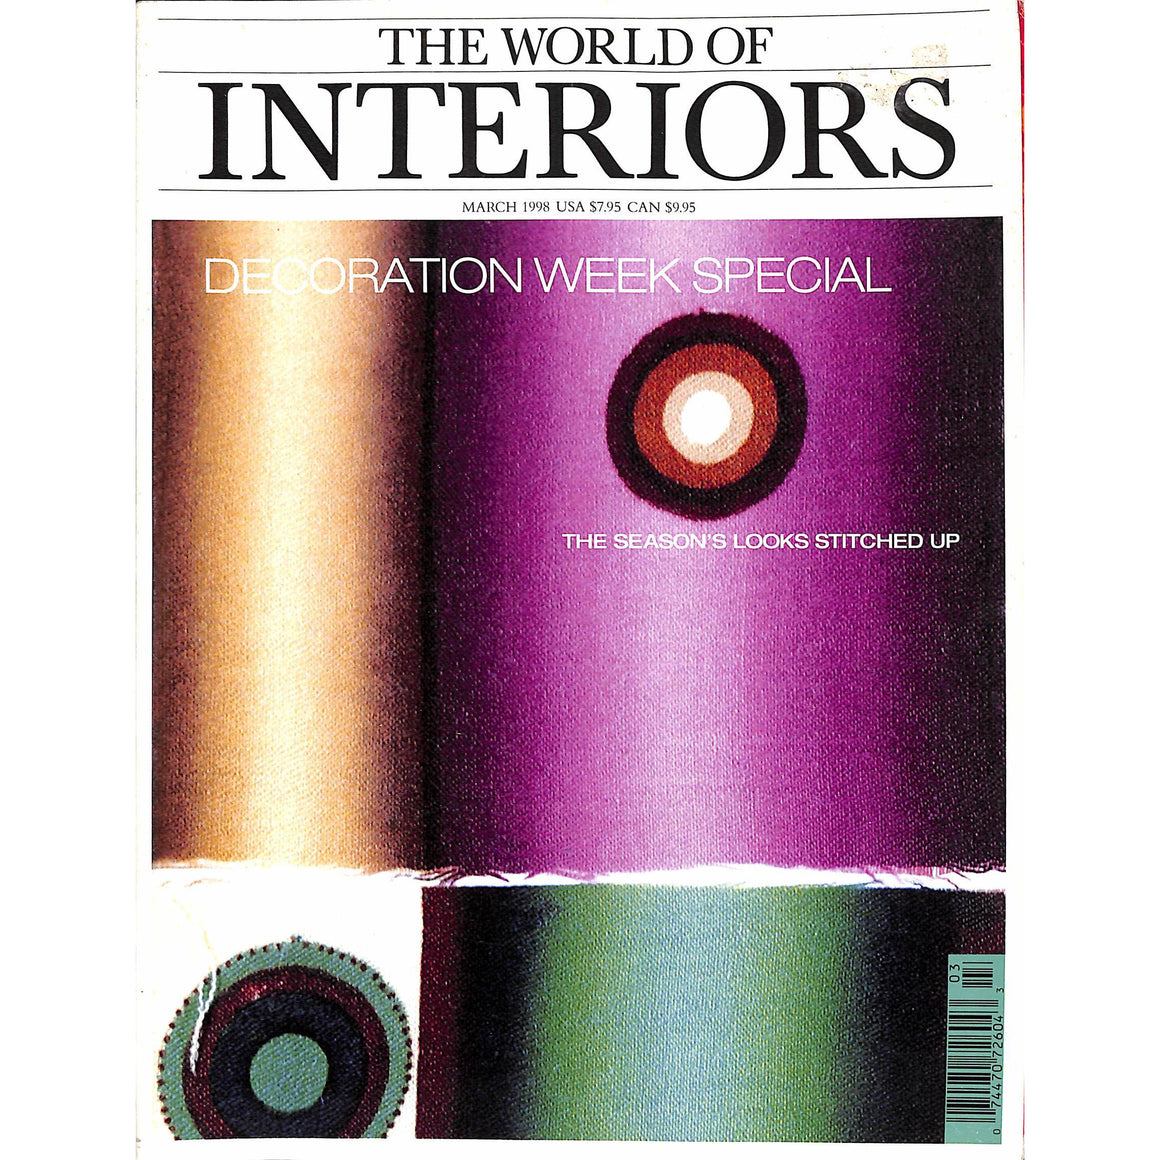 The World of Interiors March 1998